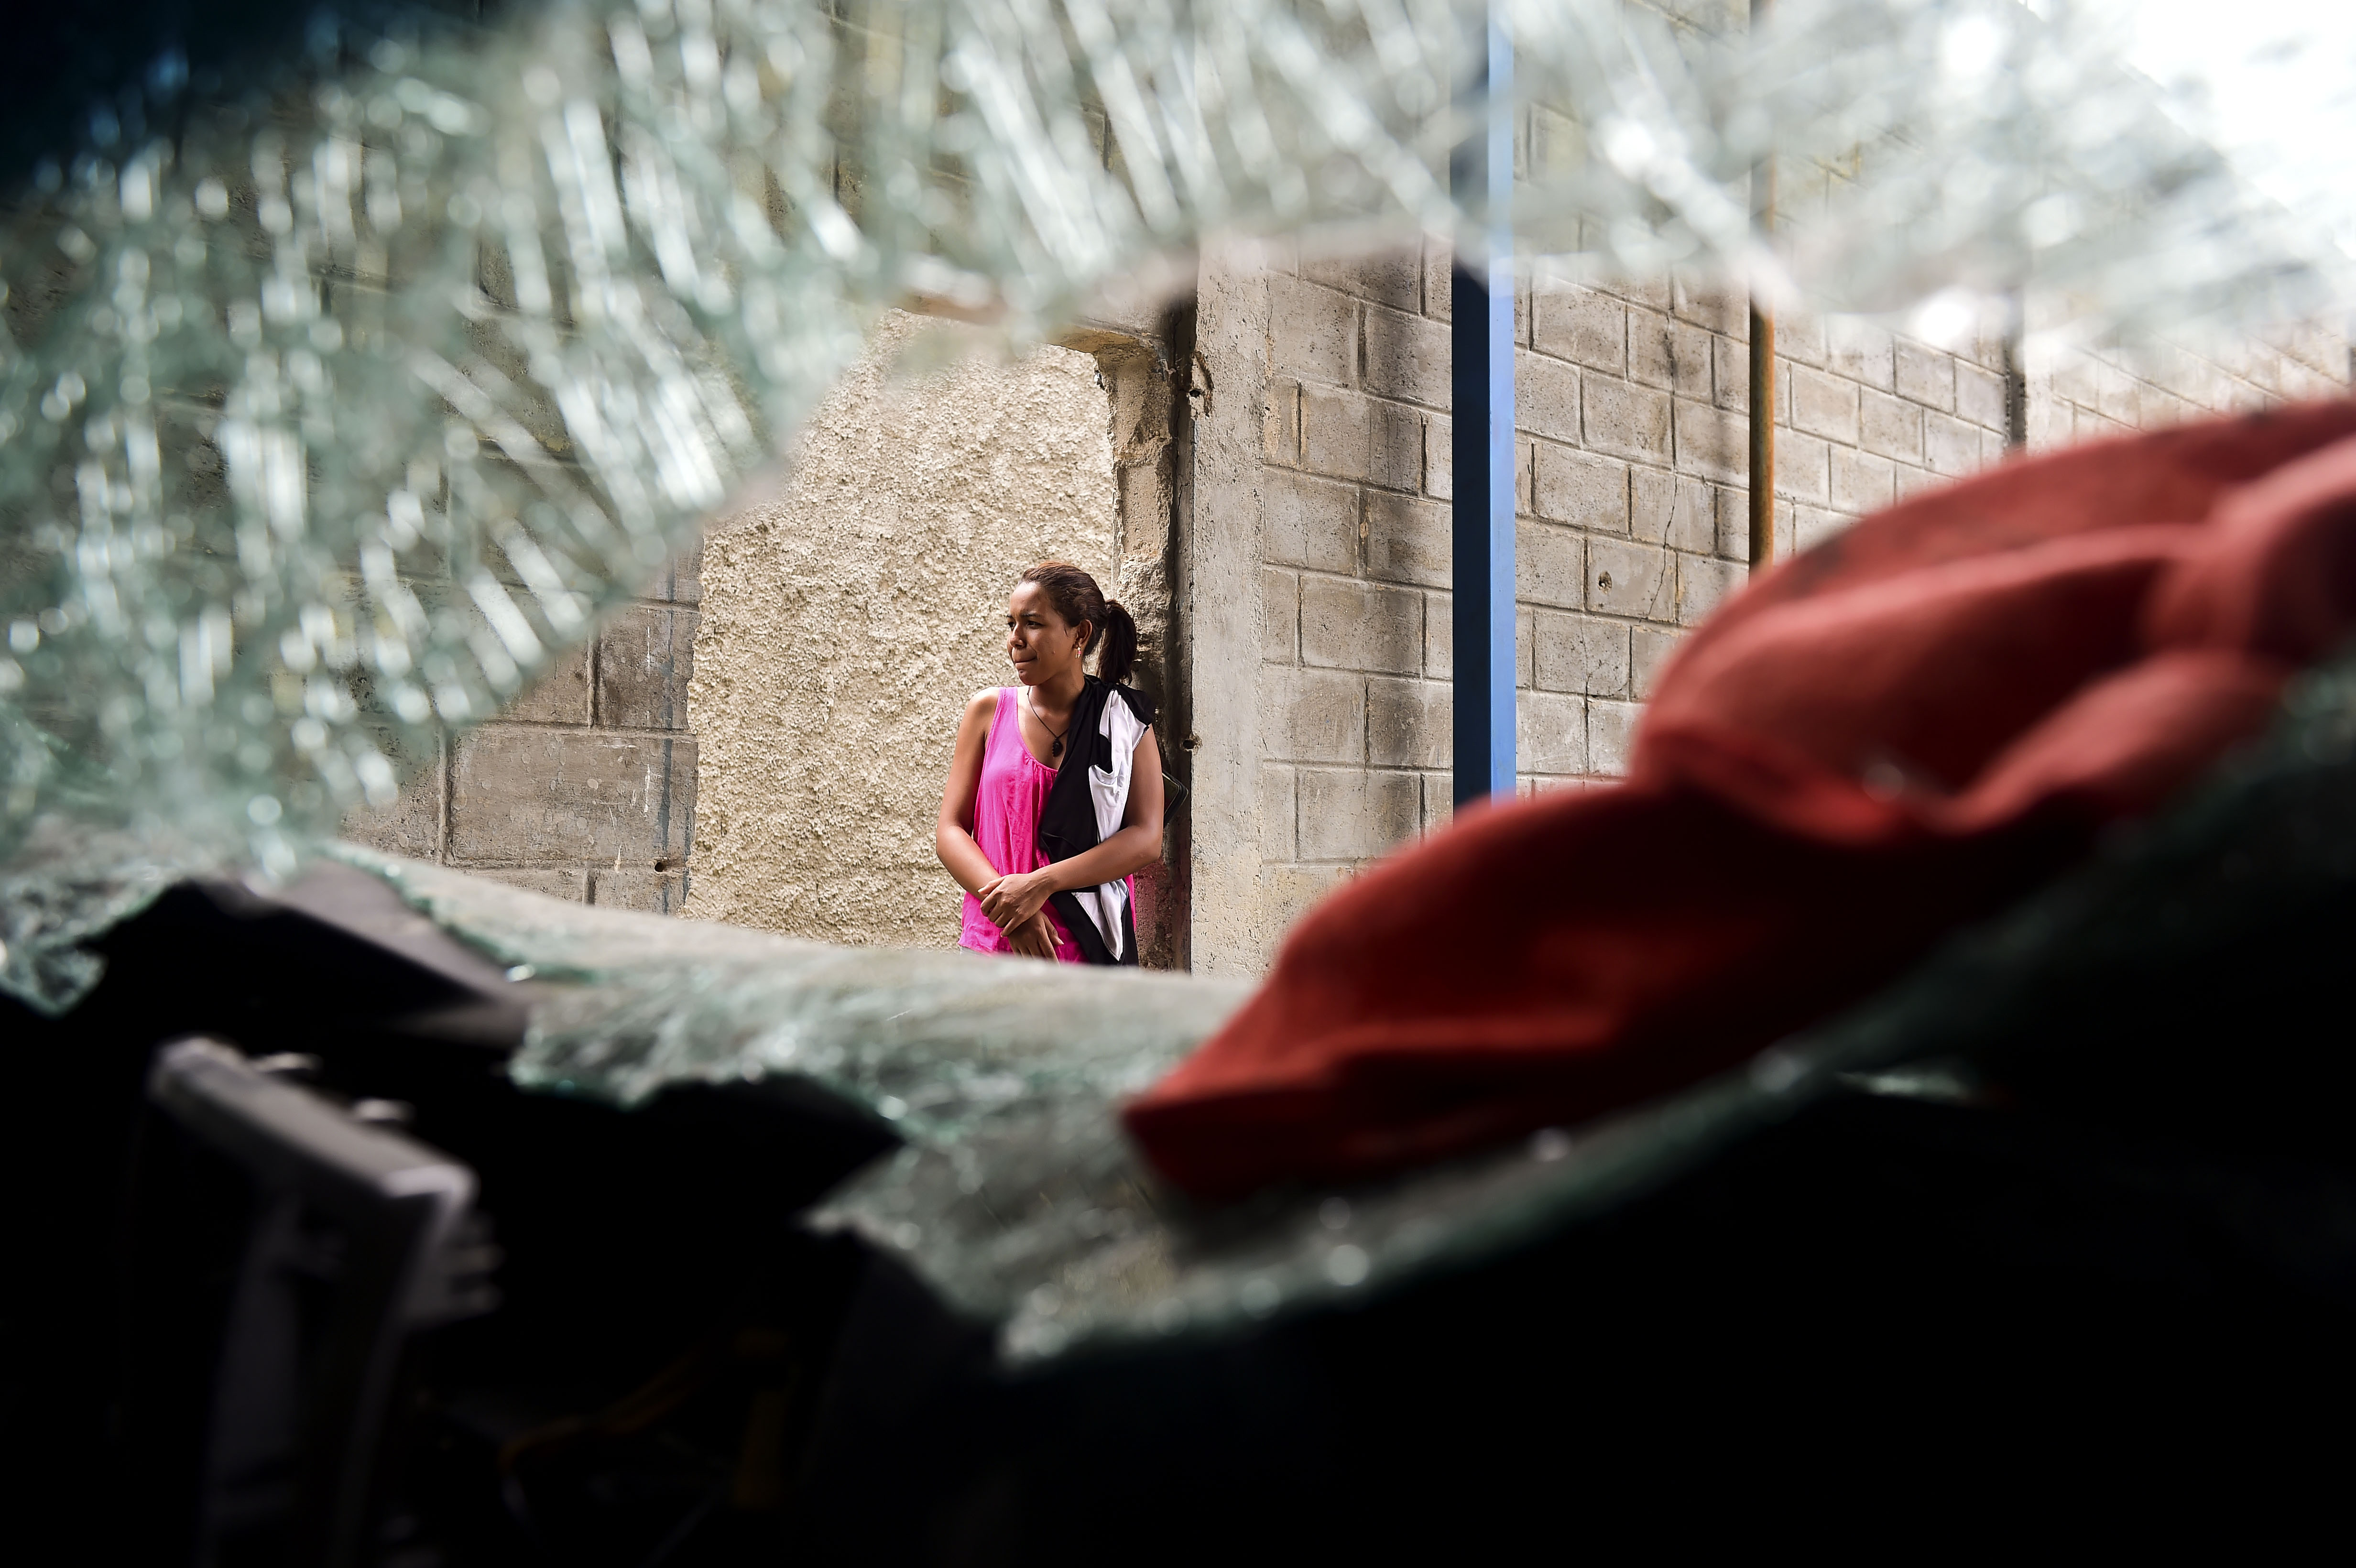 A woman stands next to a damaged car at a supermarket parking bay in Valencia, Carabobo State, Venezuela, May 5, 2017, the day after anti-government protesters looted stores, set fire to cars and clashed with police.